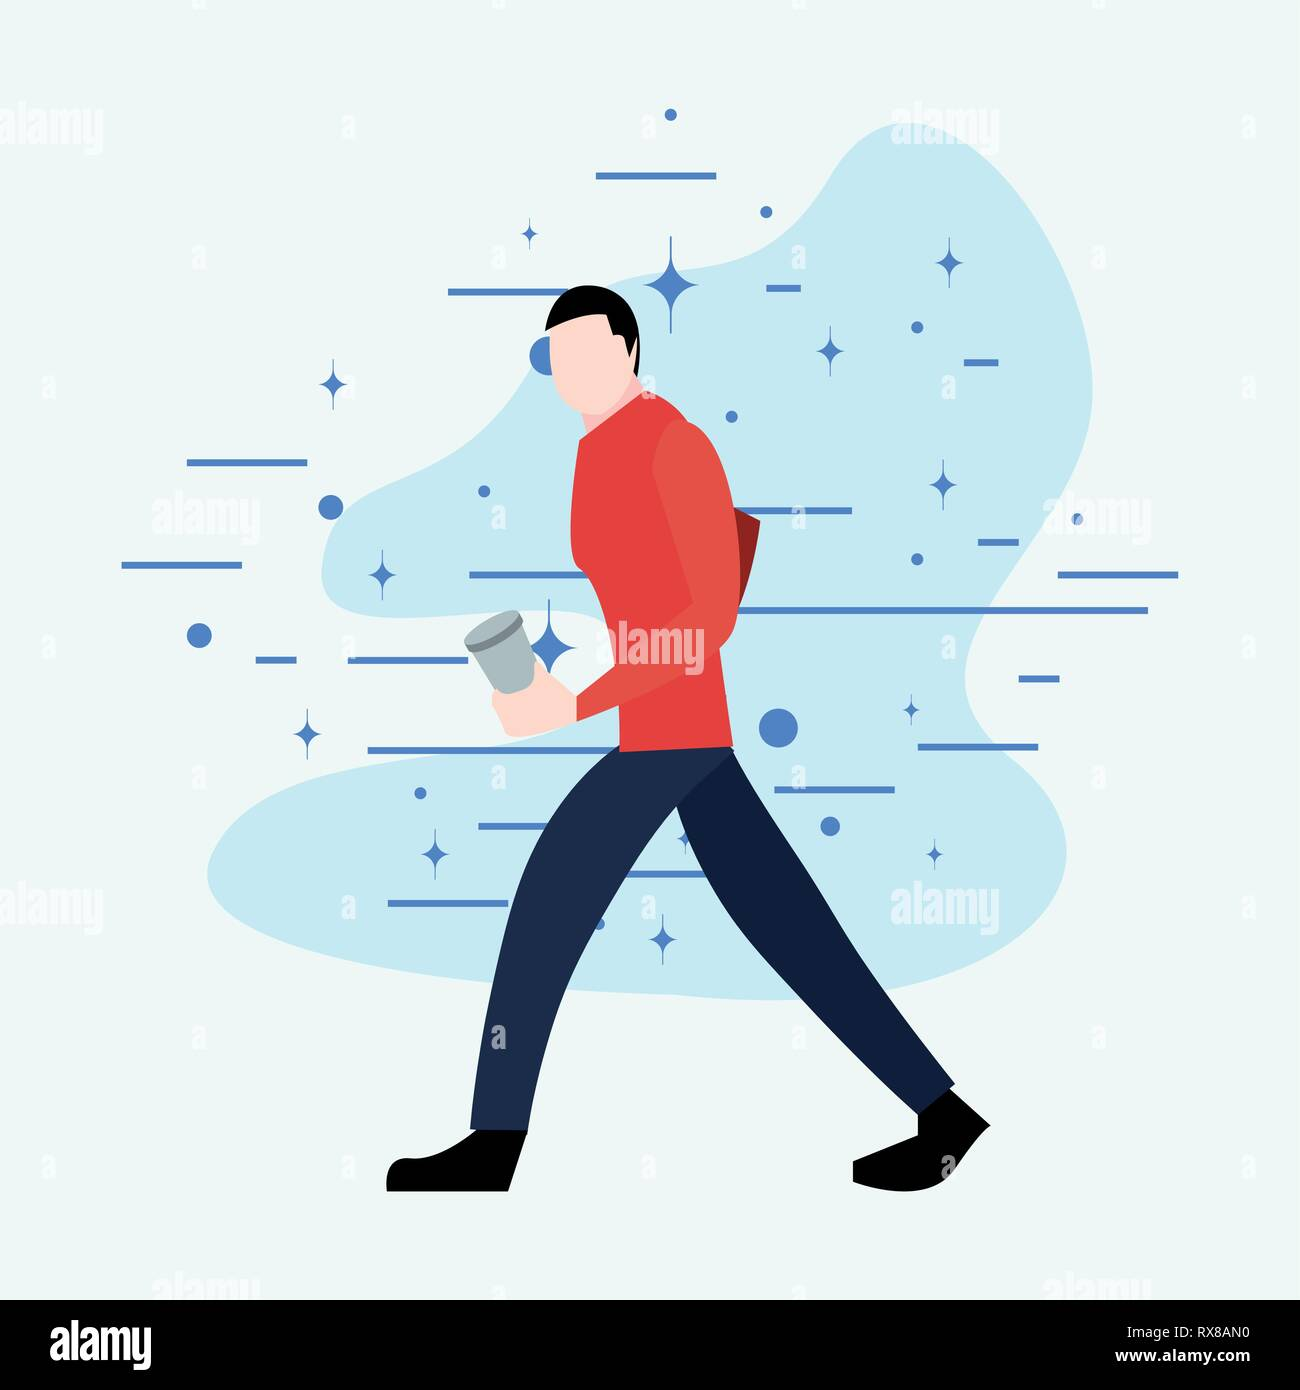 man walking with disposable cup activity vector illustration - Stock Vector